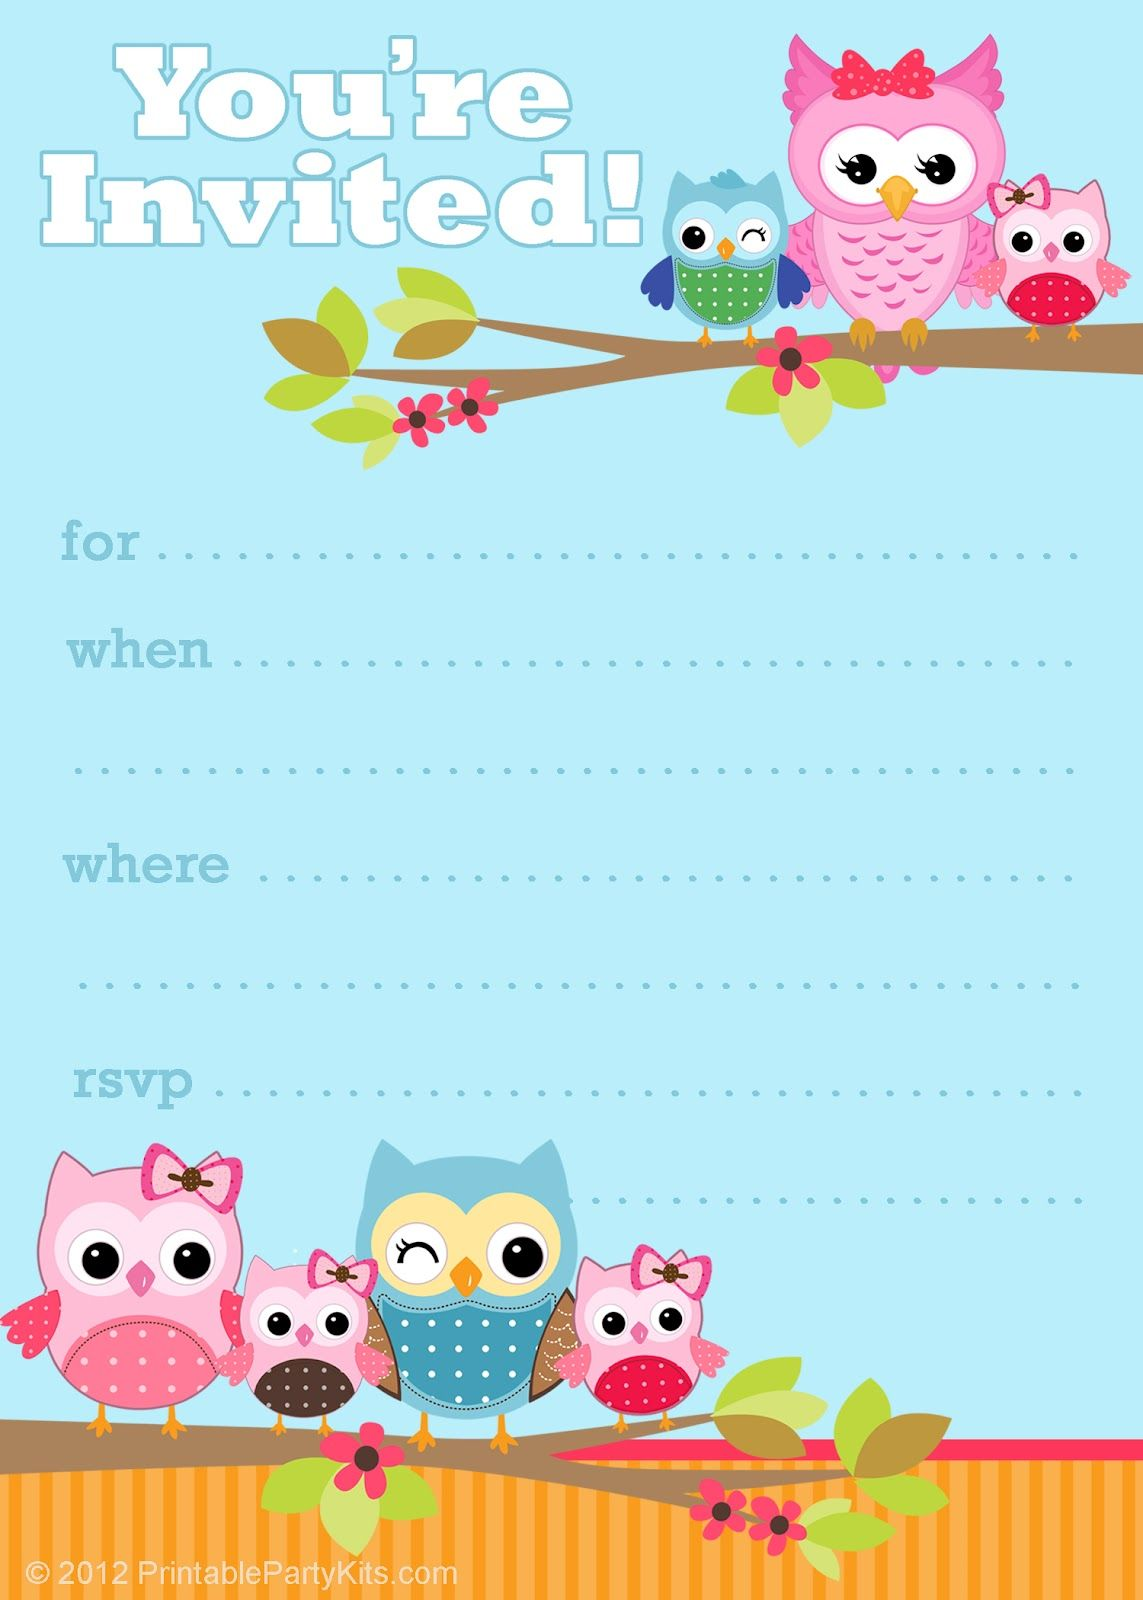 41 Printable Birthday Party Cards & Invitations For Kids